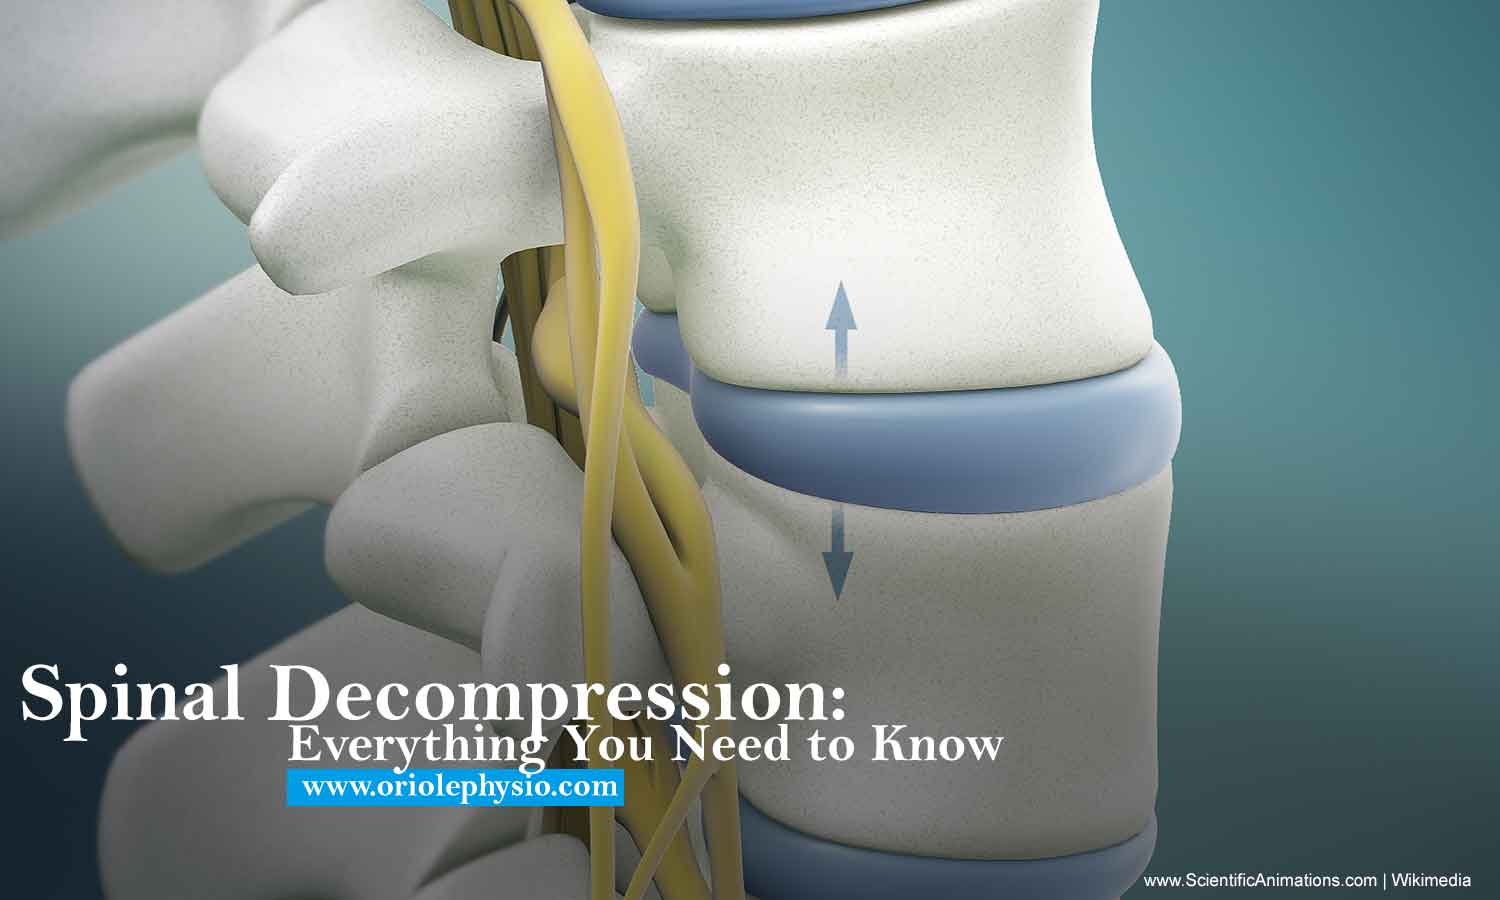 Spinal Decompression: Everything You Need to Know